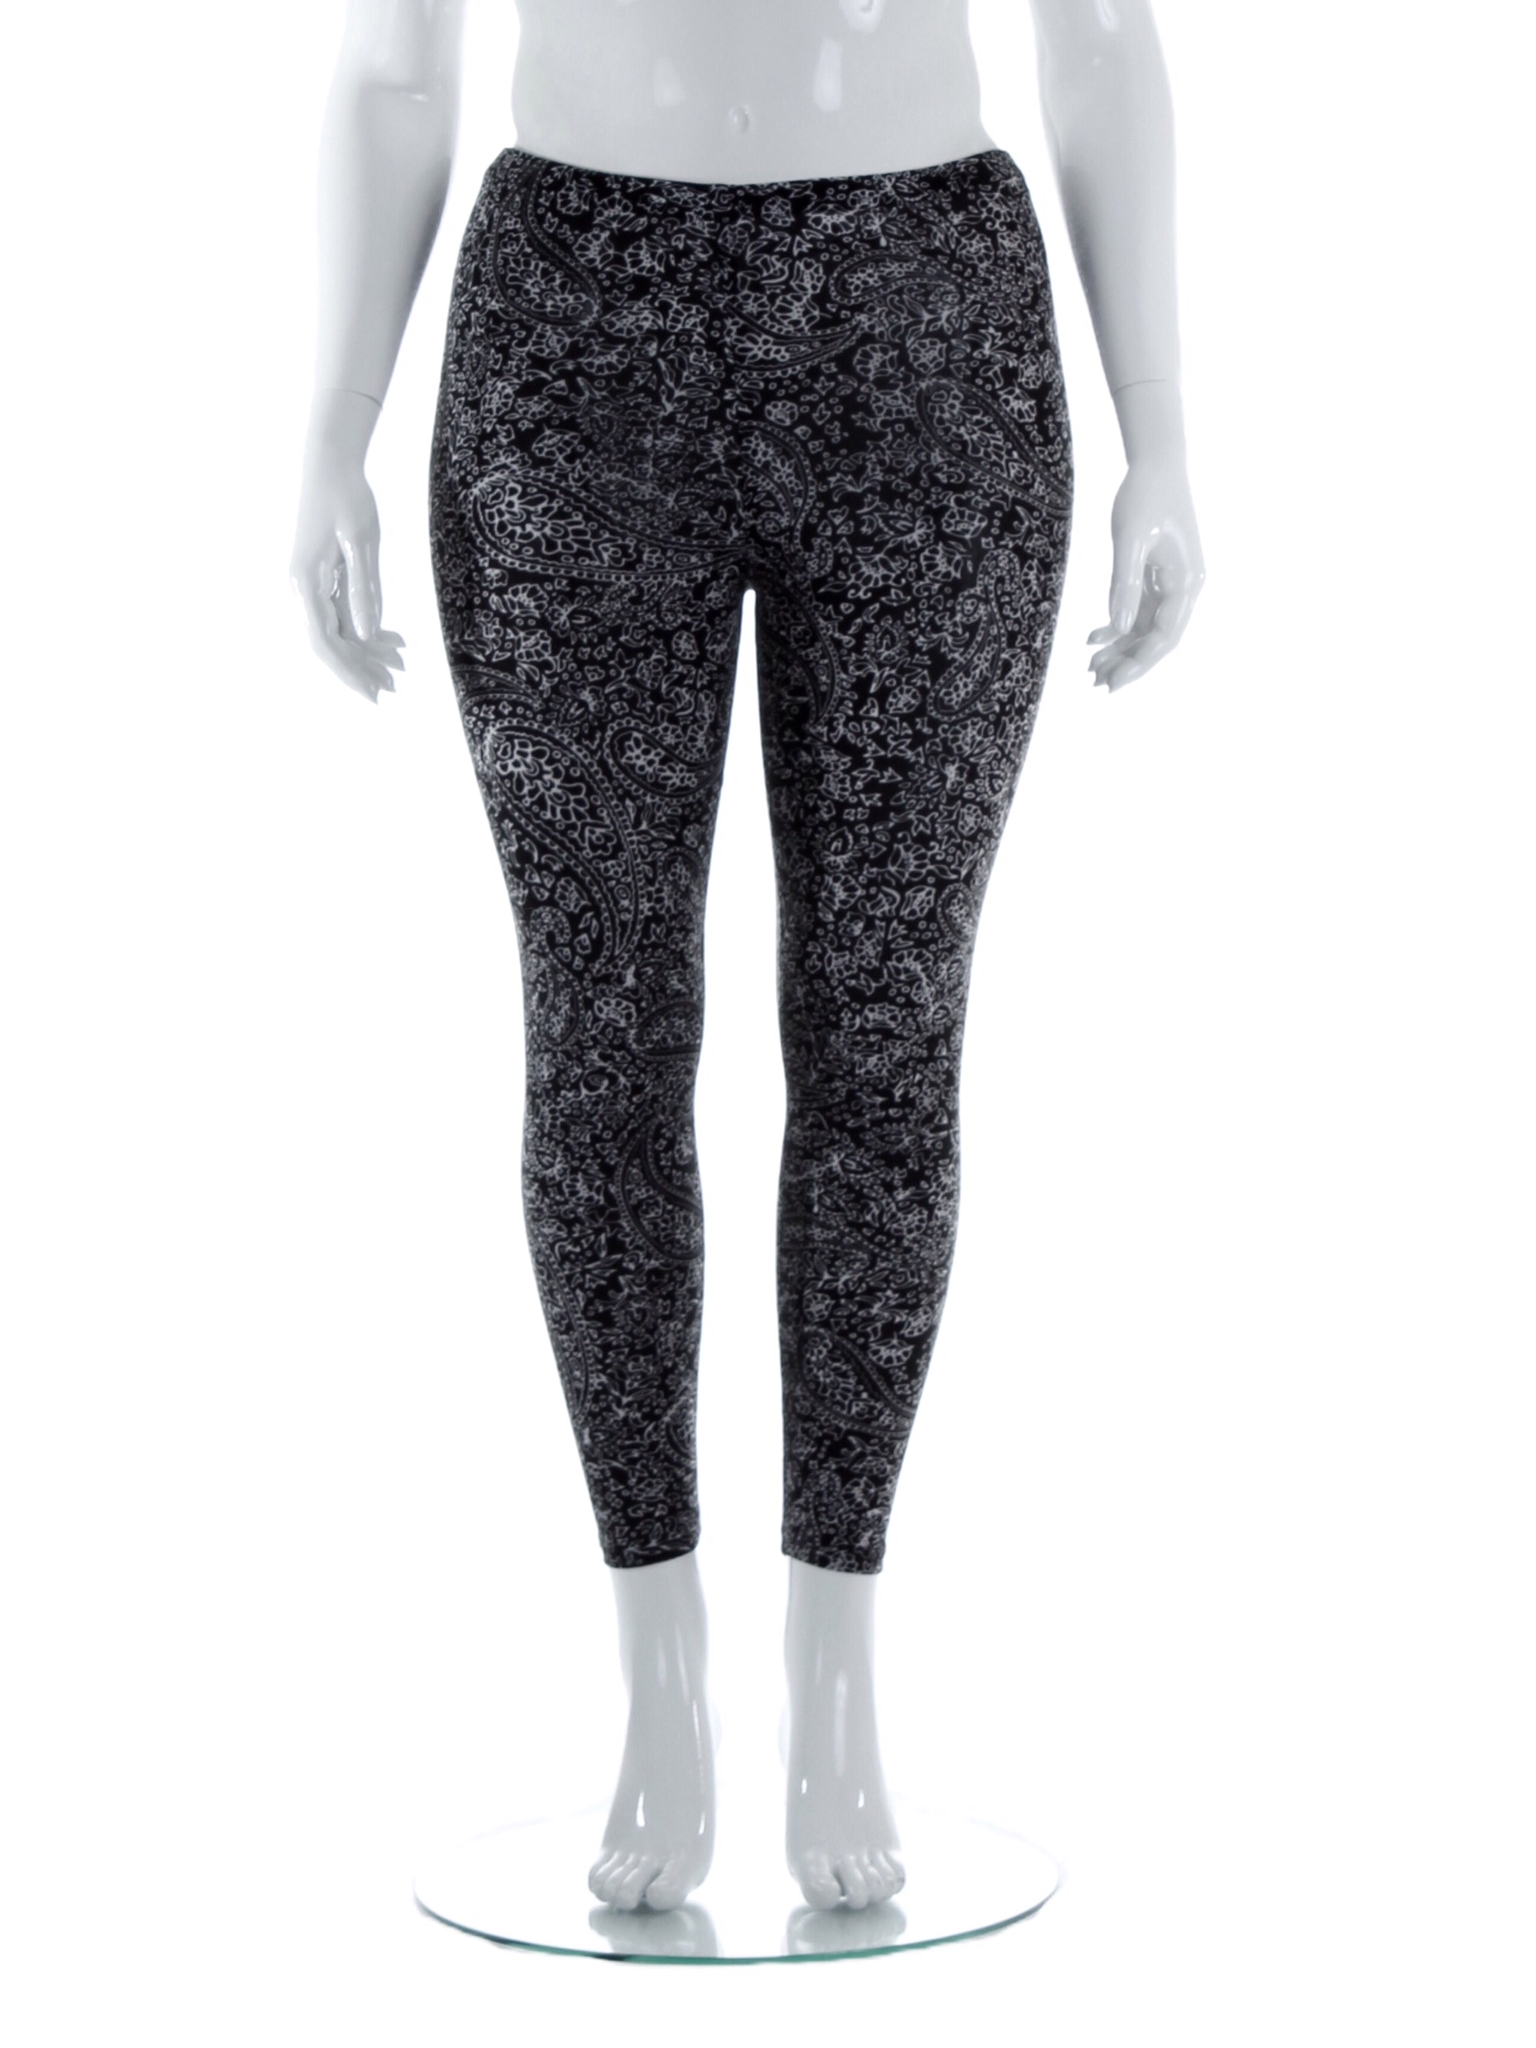 5f031aeb896 Plus size leggings that don t roll down...and I know